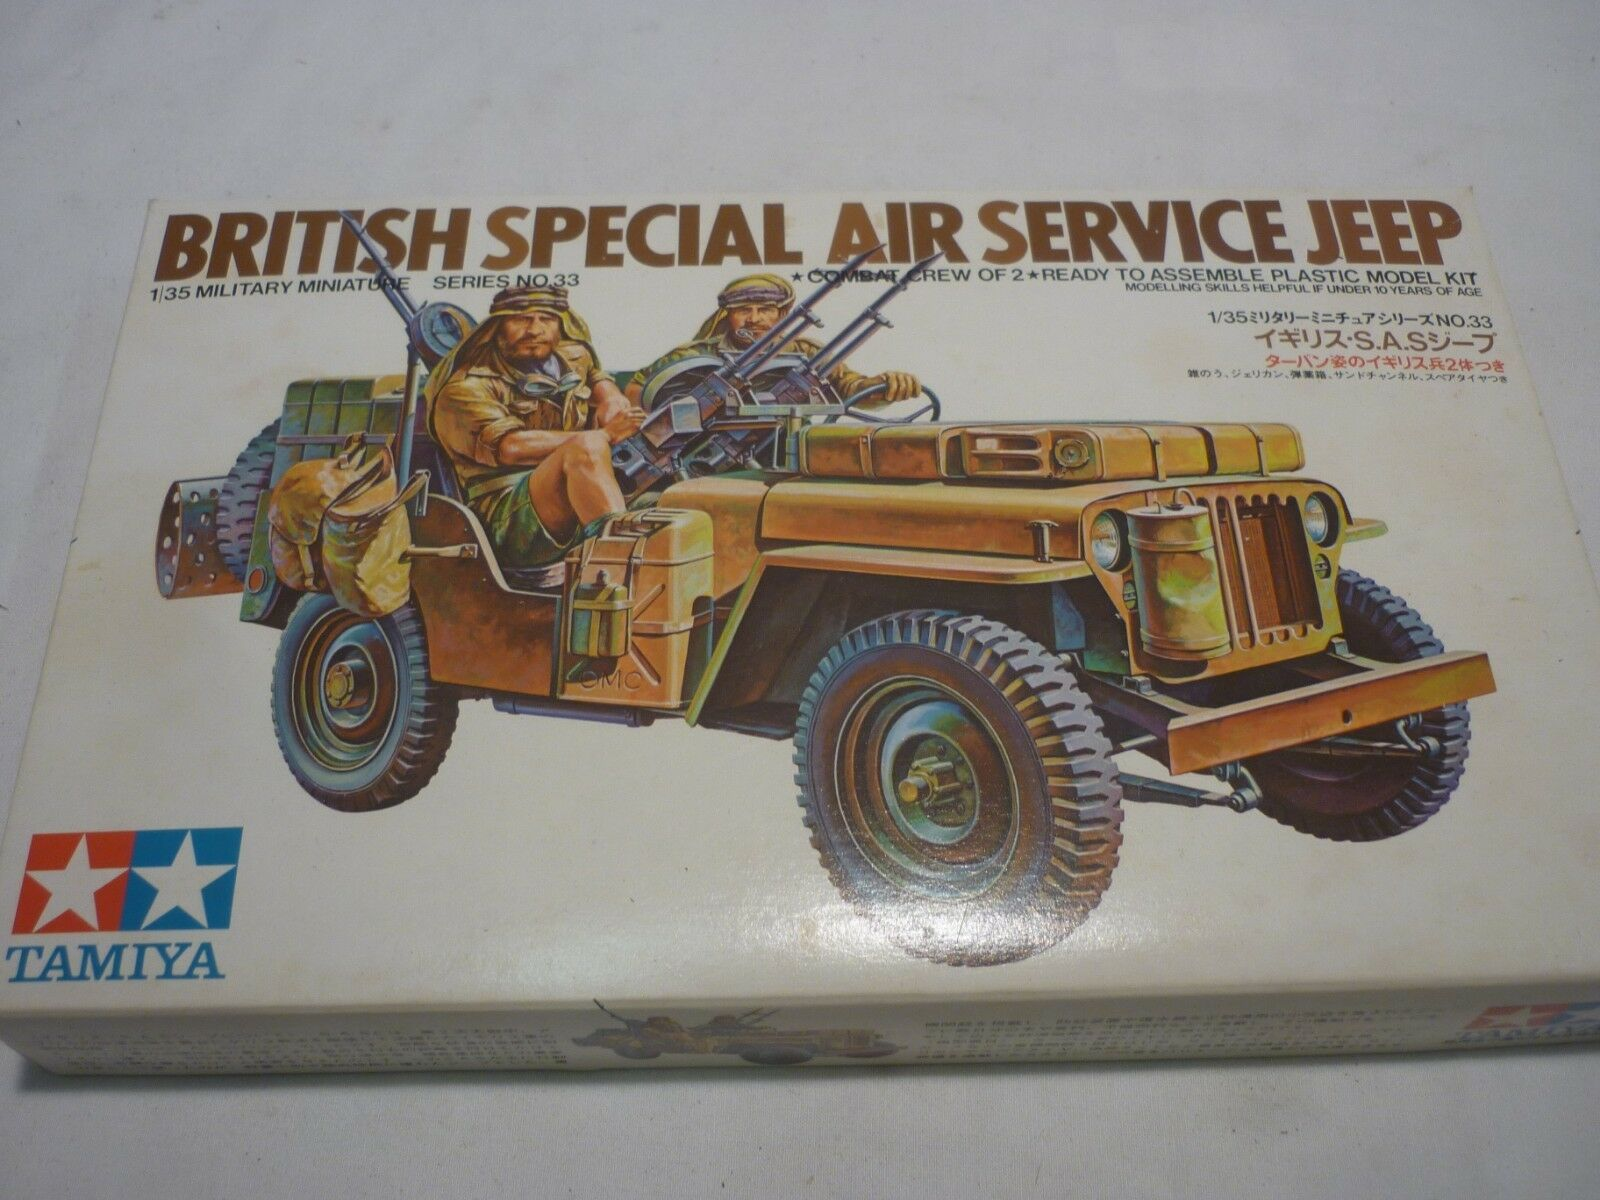 A Tamiya unmade plastic kit of a British Special Air Services Jeep. Boxed.